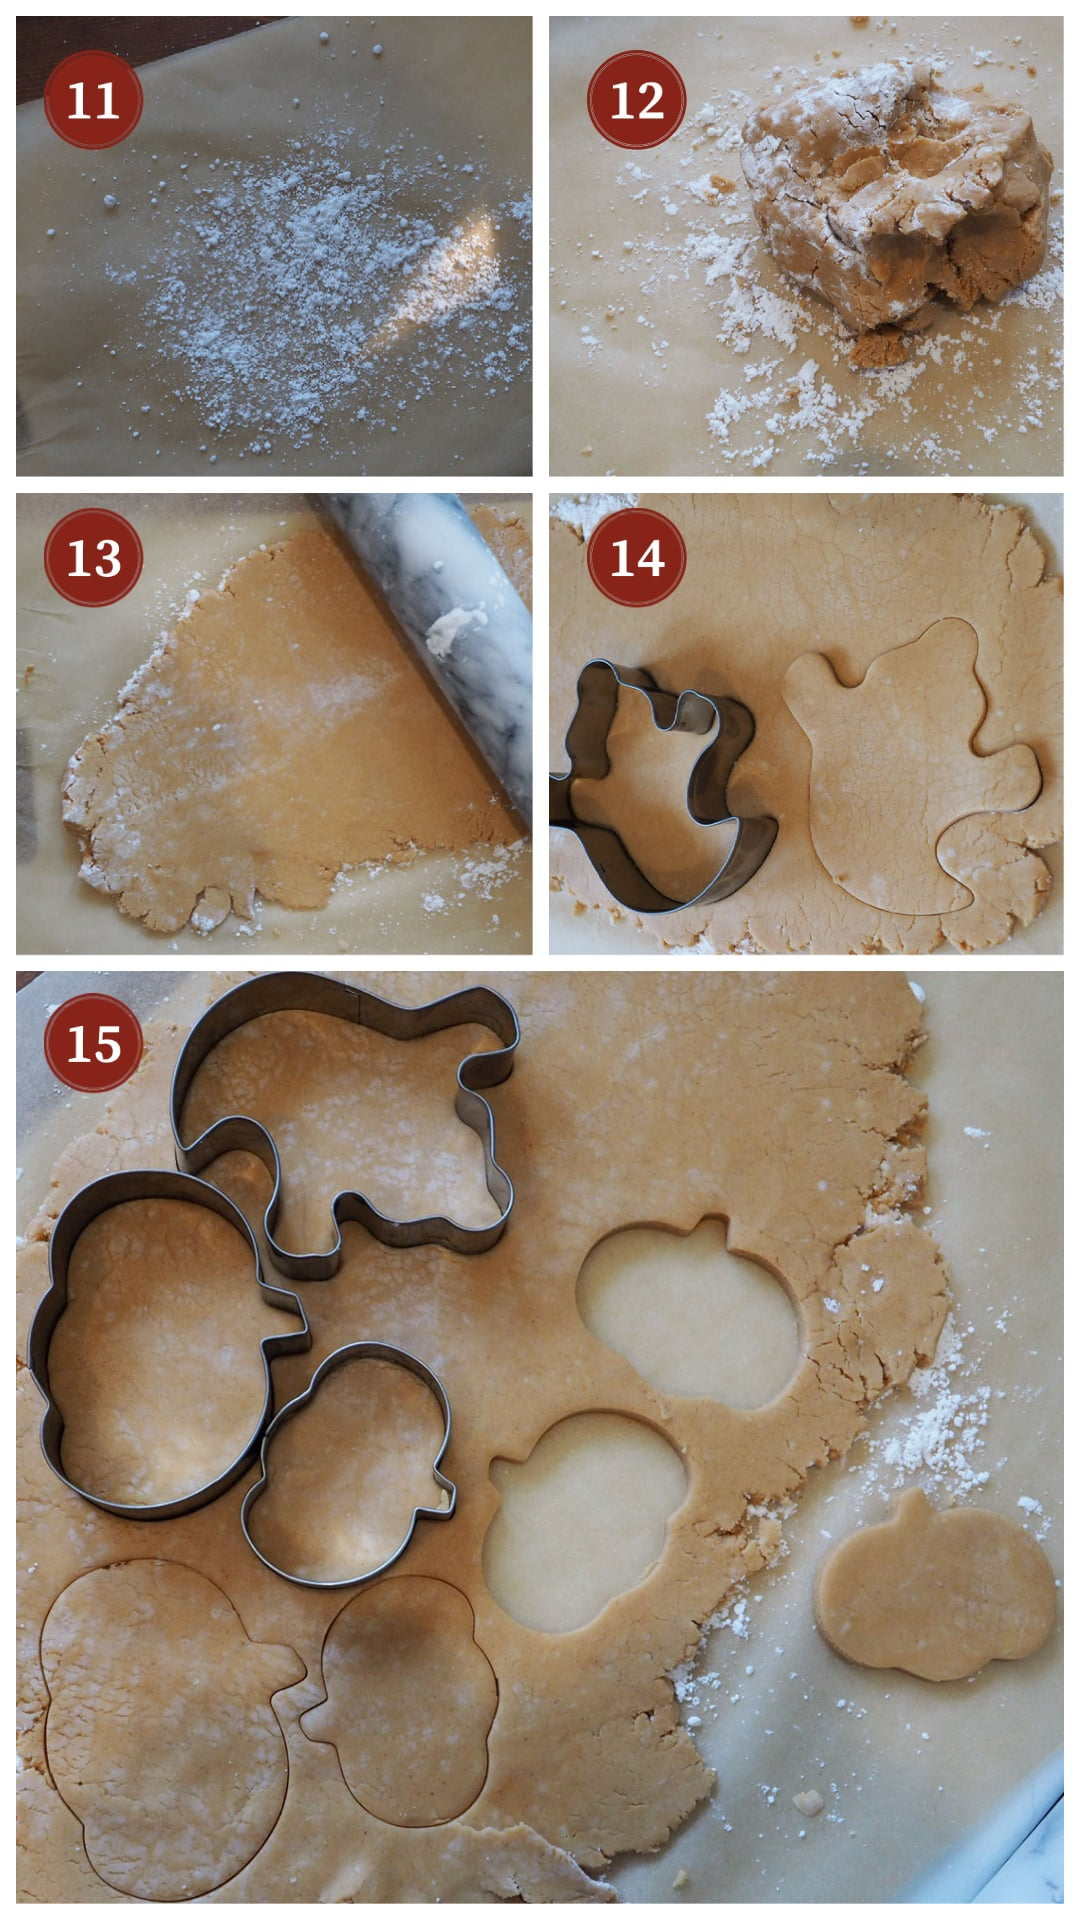 A collage of images showing how to roll out the dough for homemade peanut butter cup shapes, steps 11 - 15.